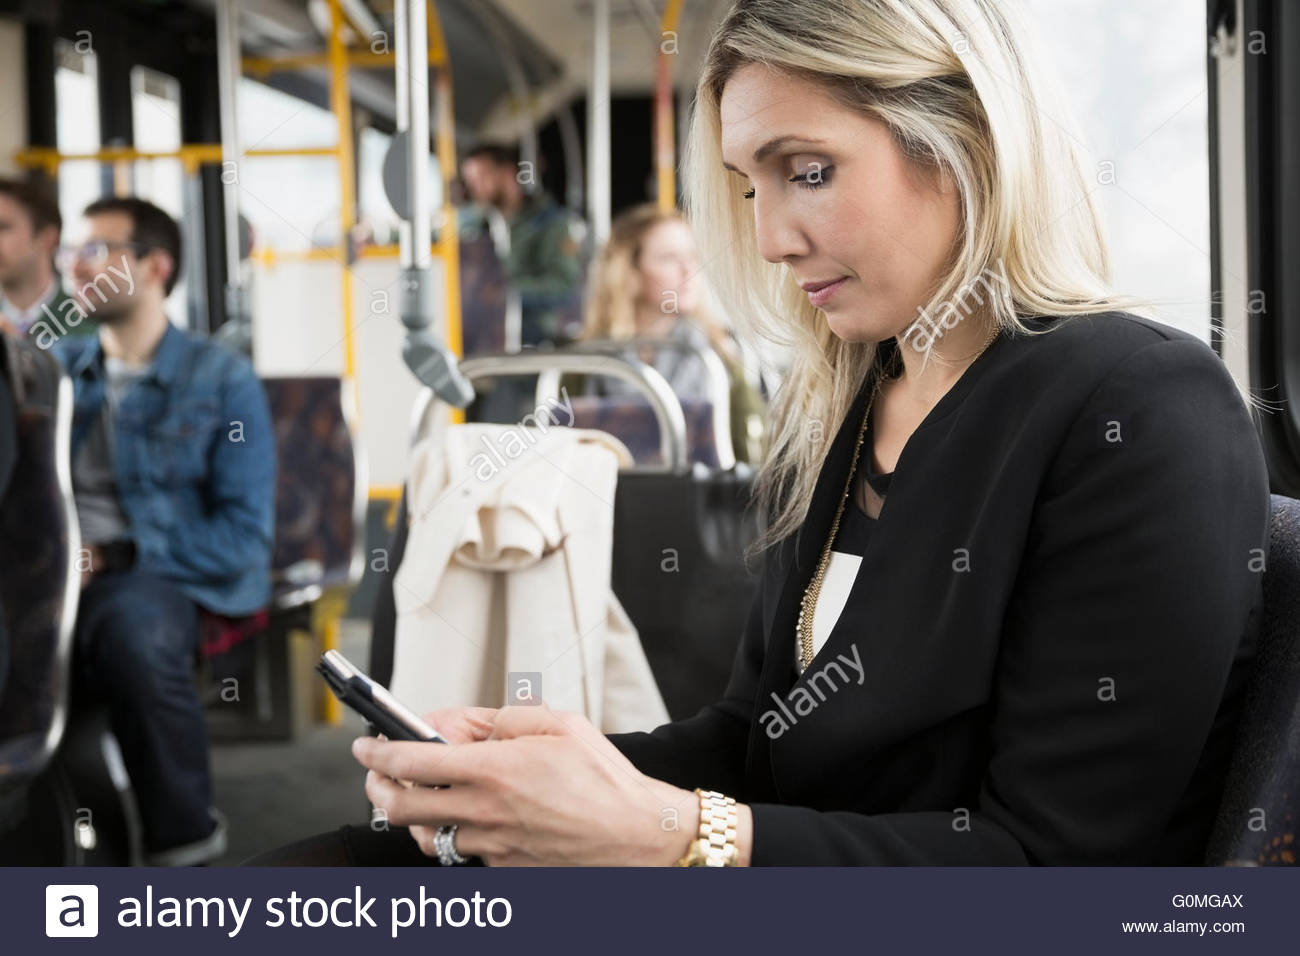 Businesswoman texting with cell phone on bus - Stock Image